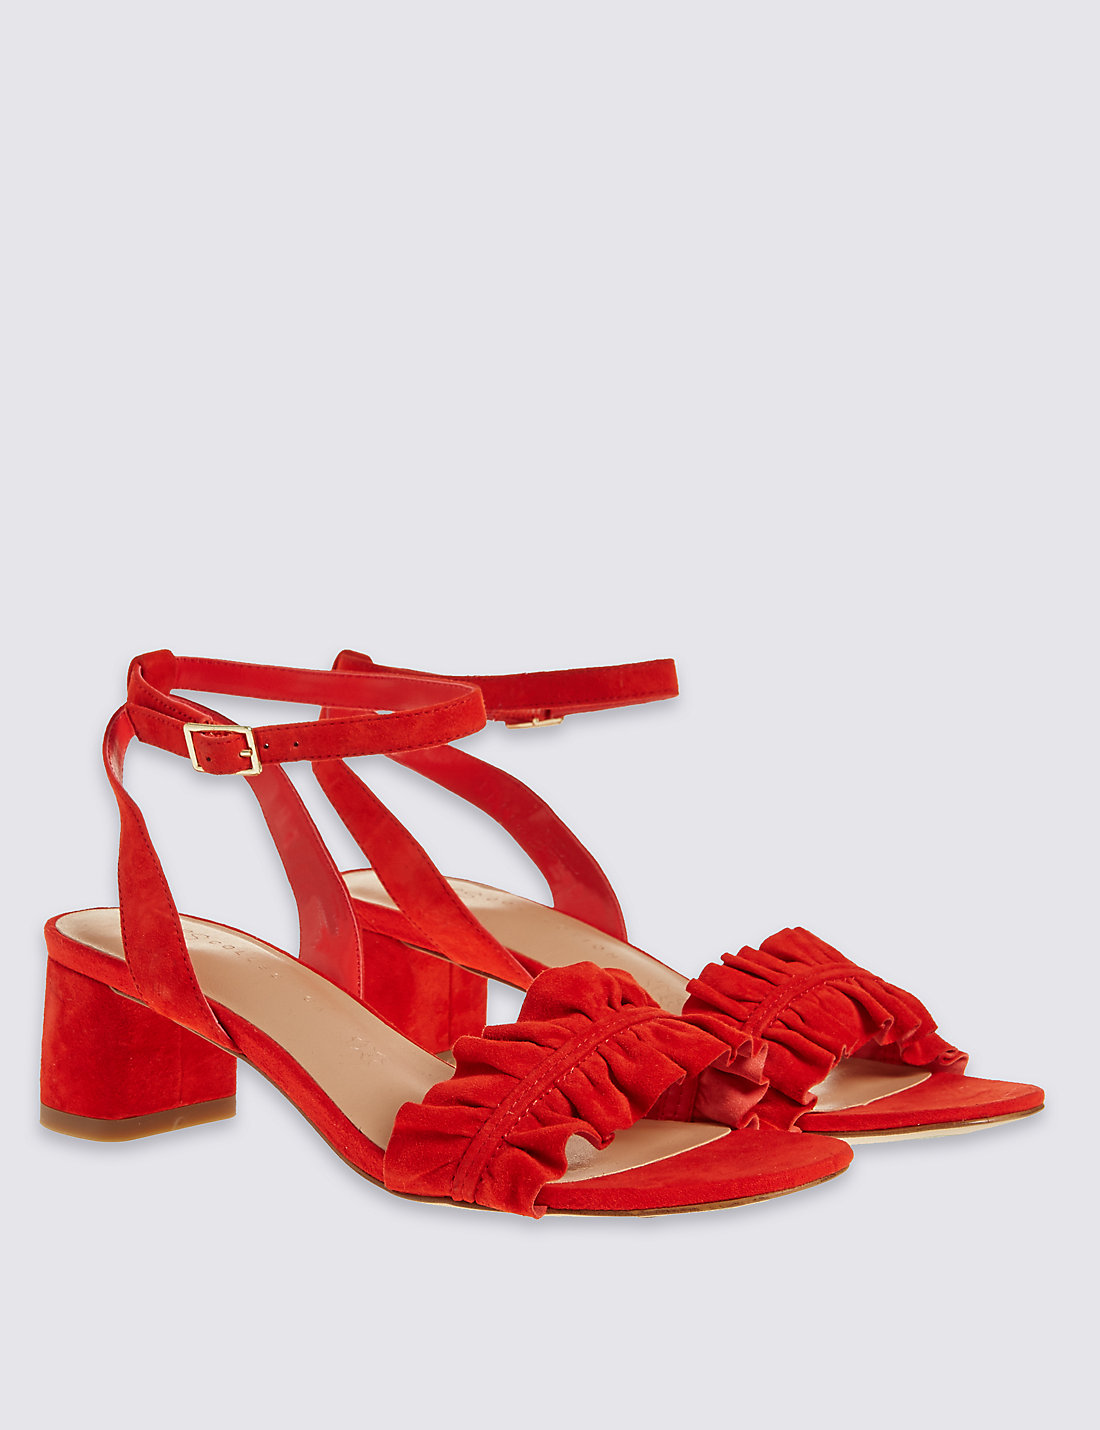 M&S Flame Suede sandals